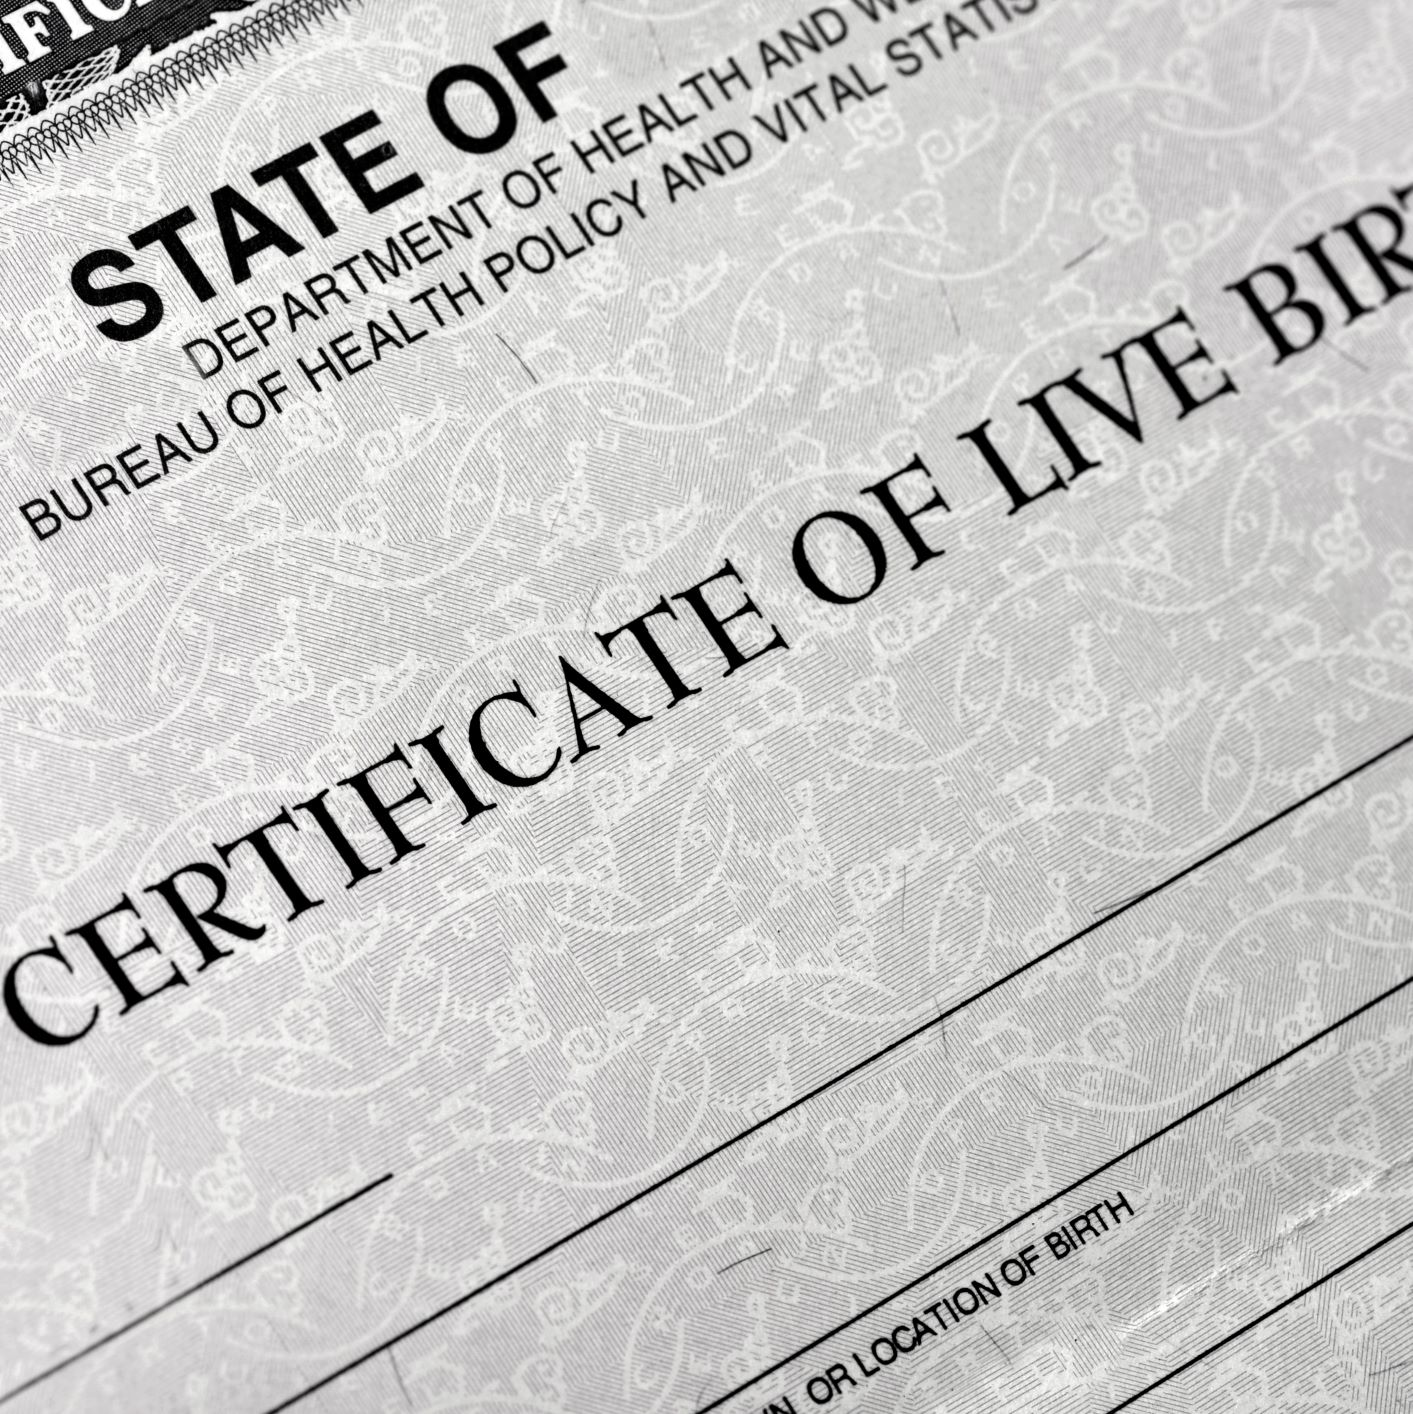 How to change the name of the child on birth certificate